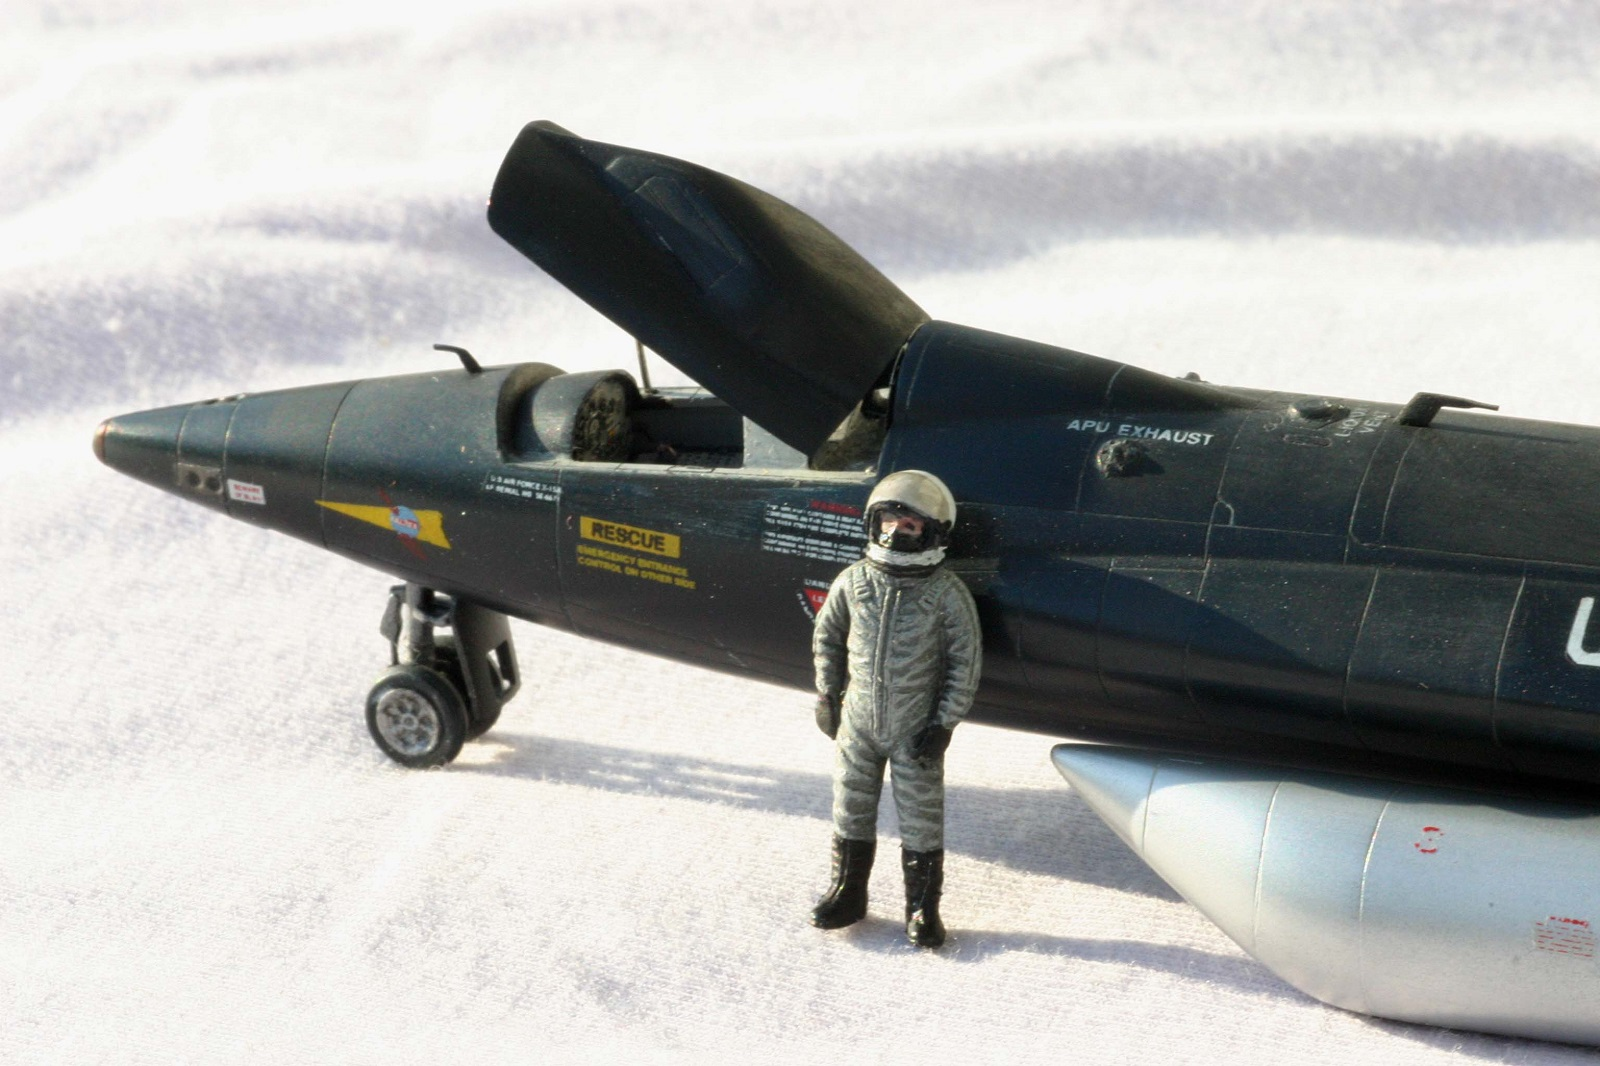 The US Military's X-15s Set a Speed Record of Mach 6.7. But It Has an